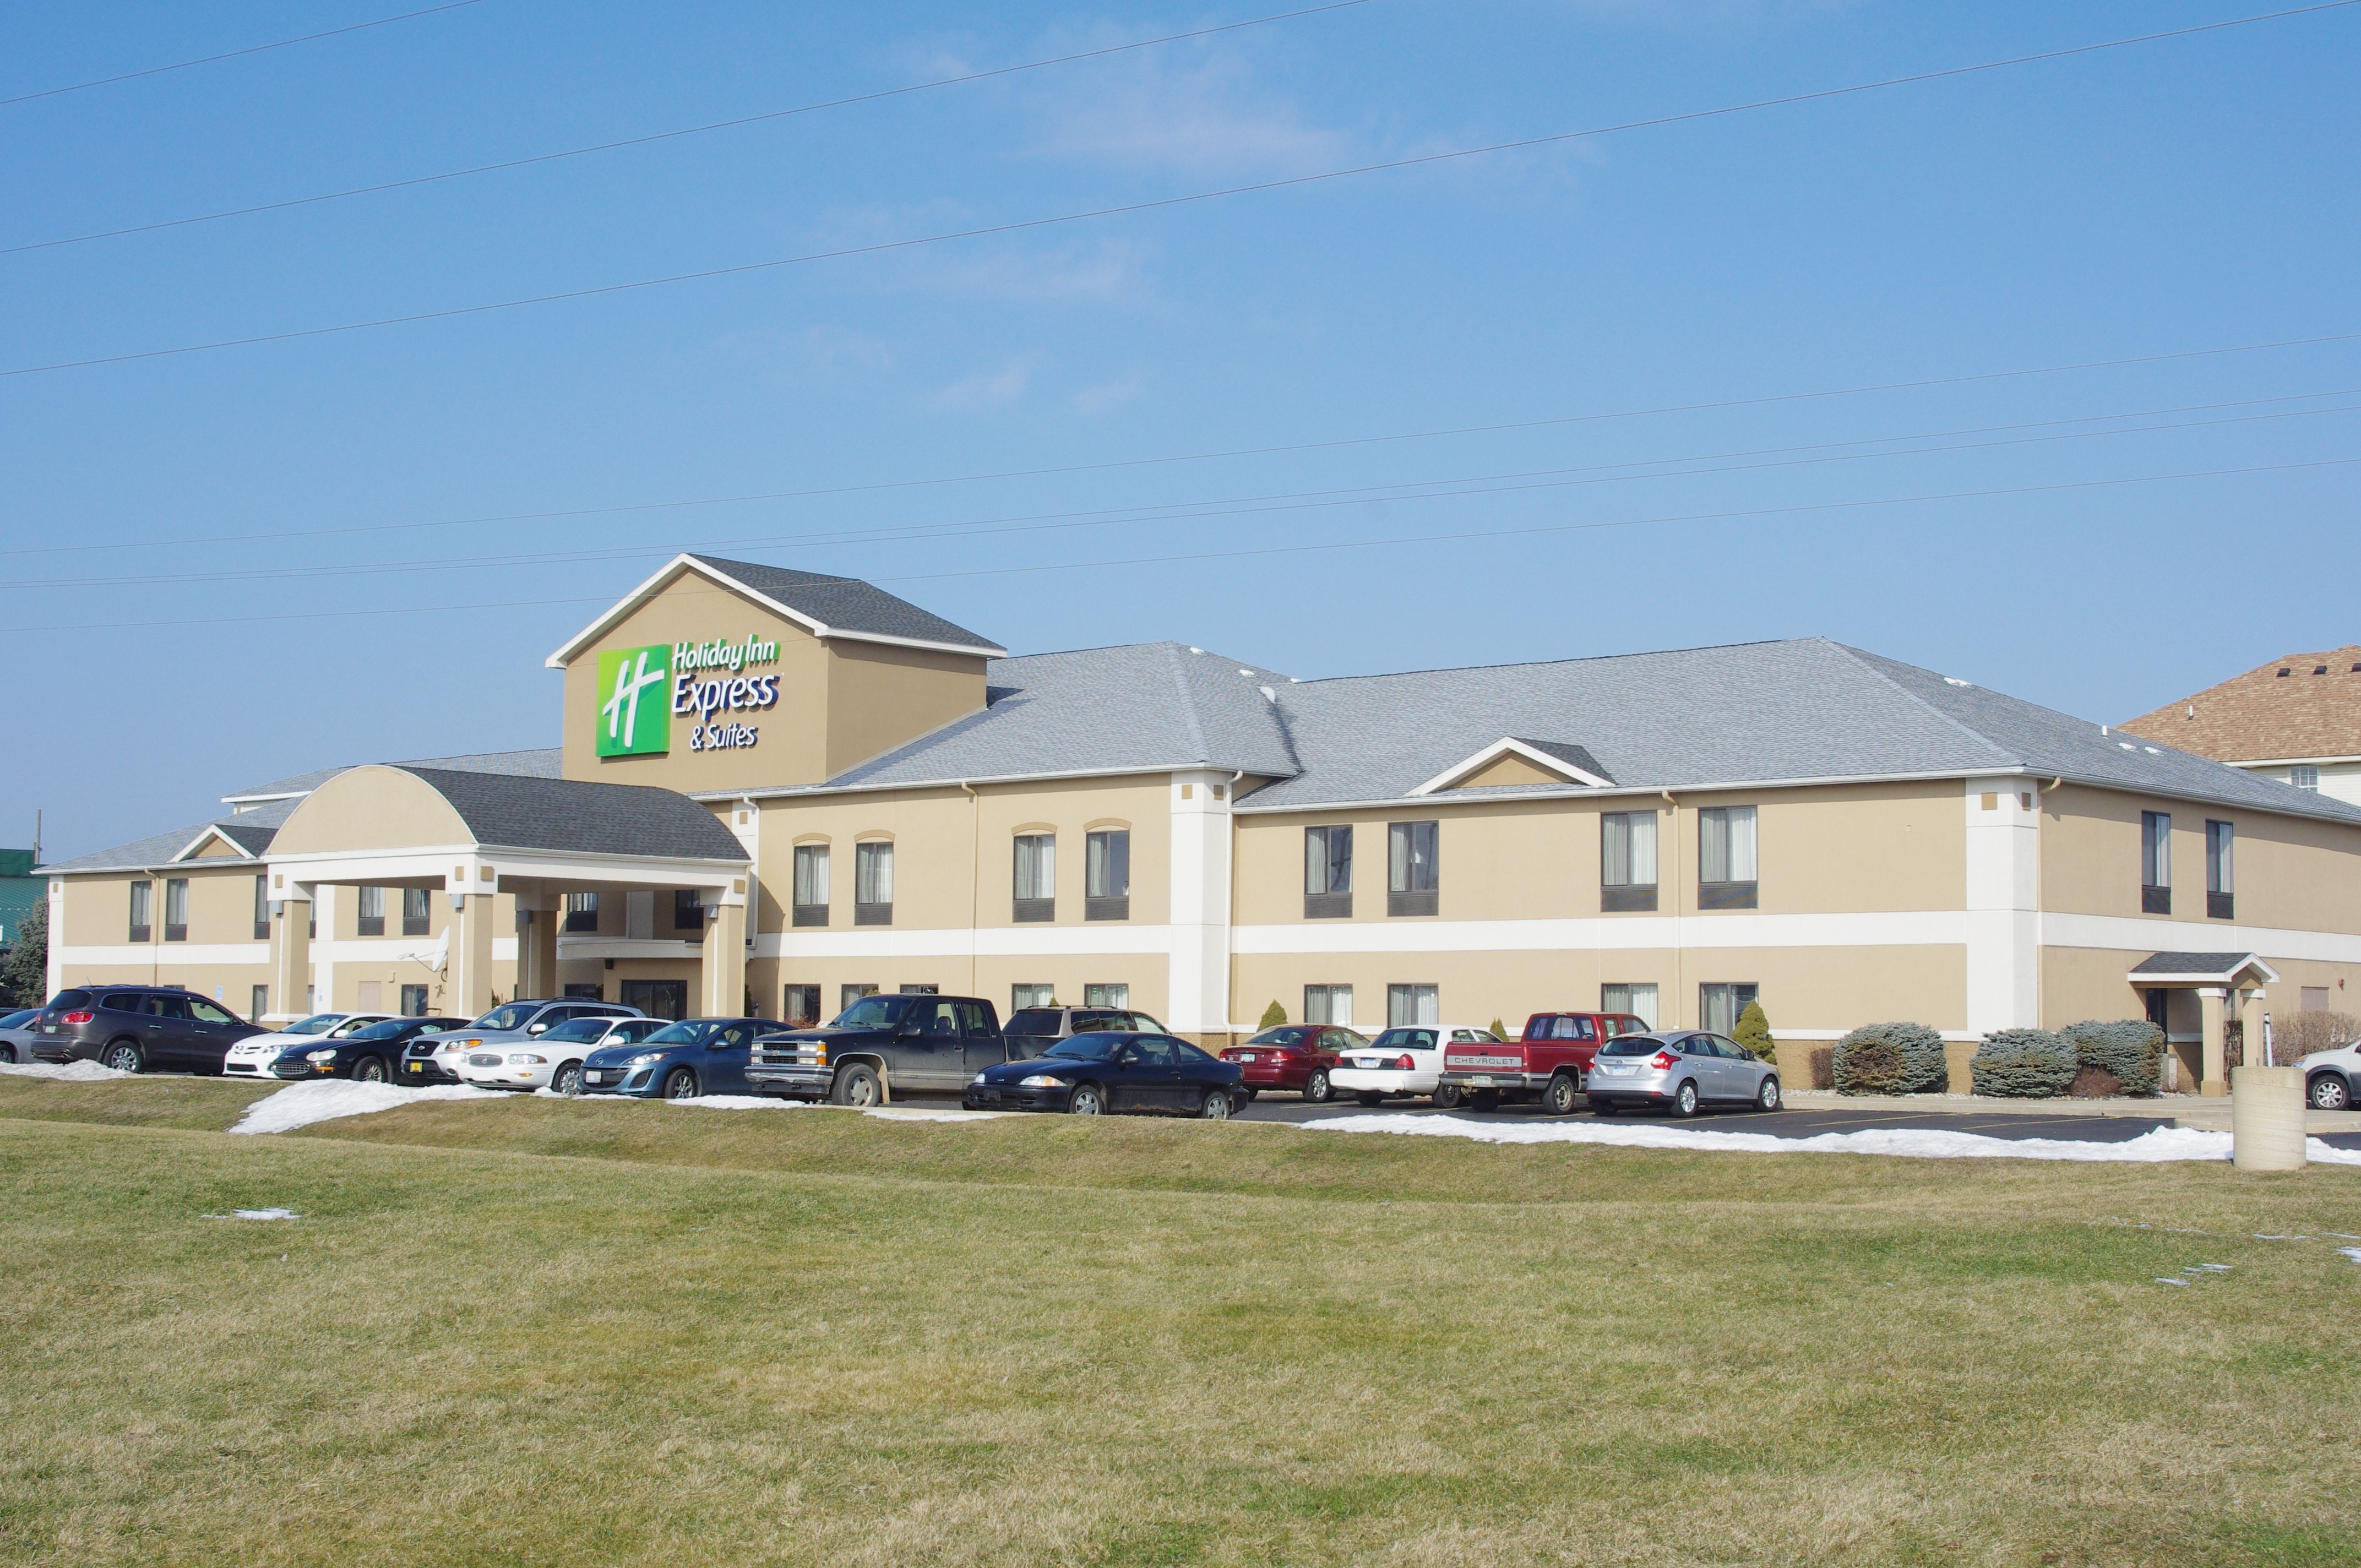 Lodging Options Include The Holiday Inn Express Hotel Suites At 1207 West Broadway In Three